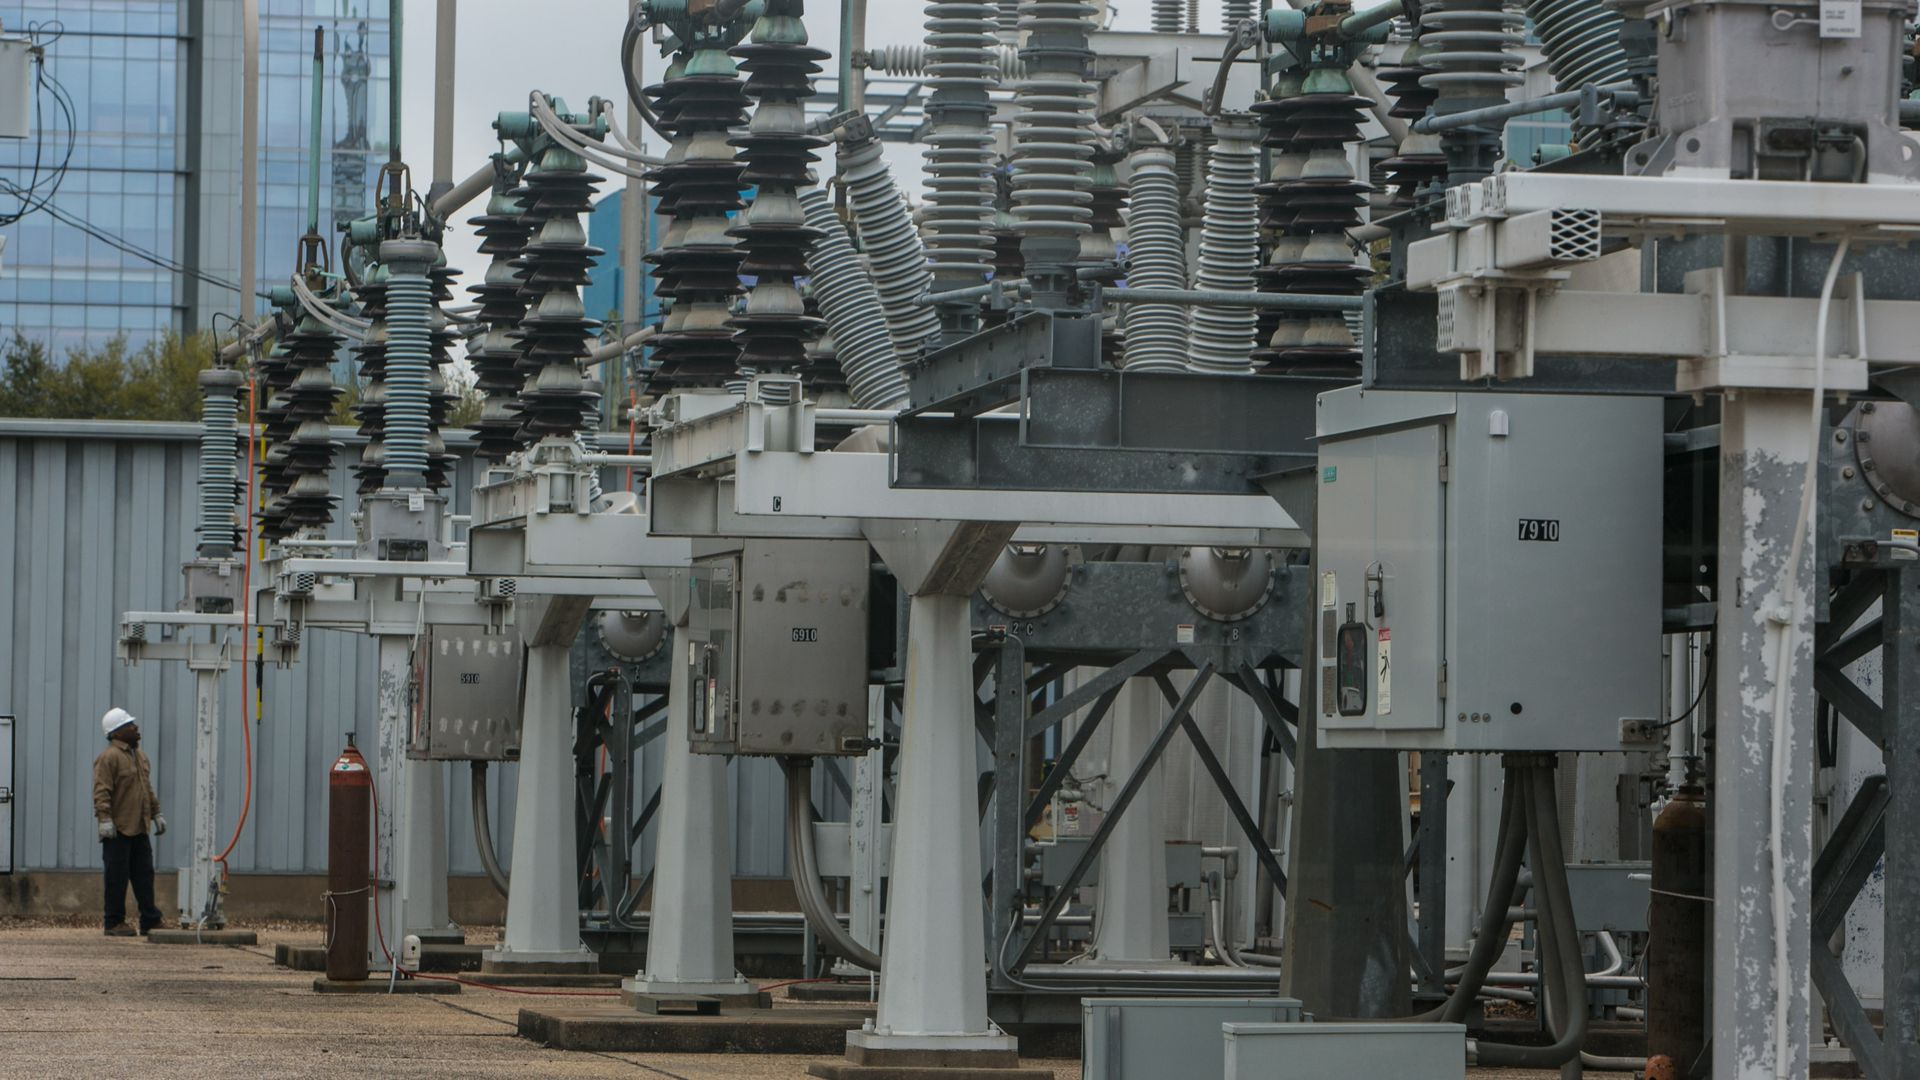 electric transformers next to an office building